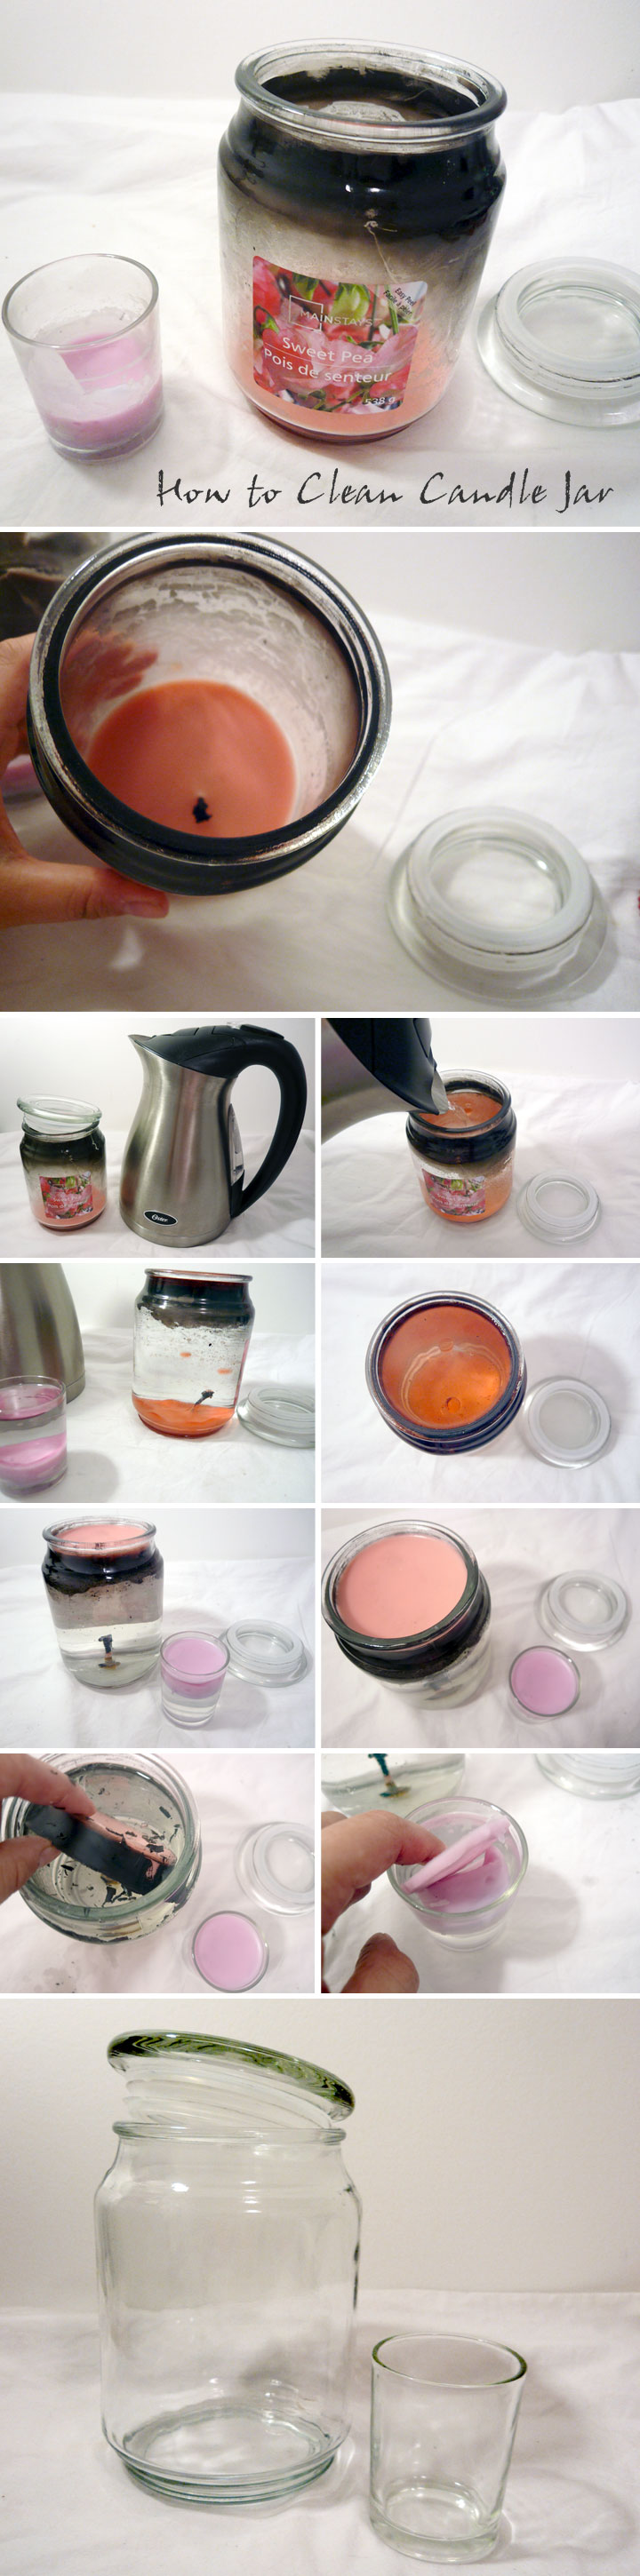 candle_jar_clean